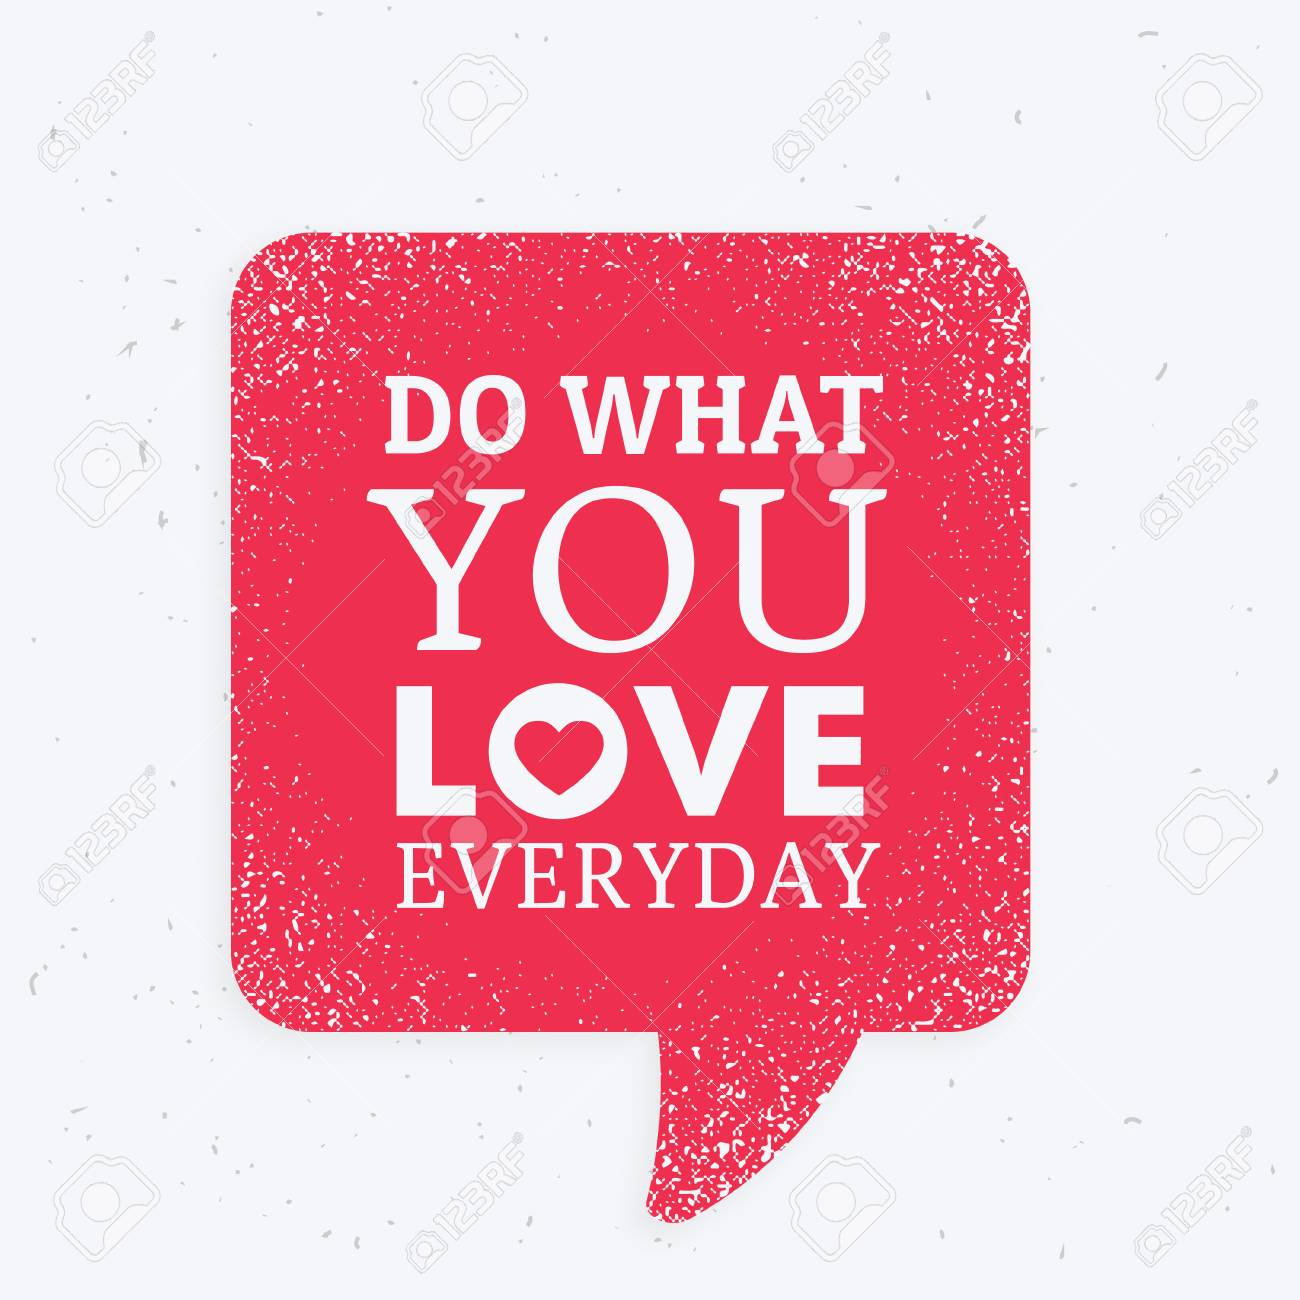 do what you love everyday inspirational quotation mark with